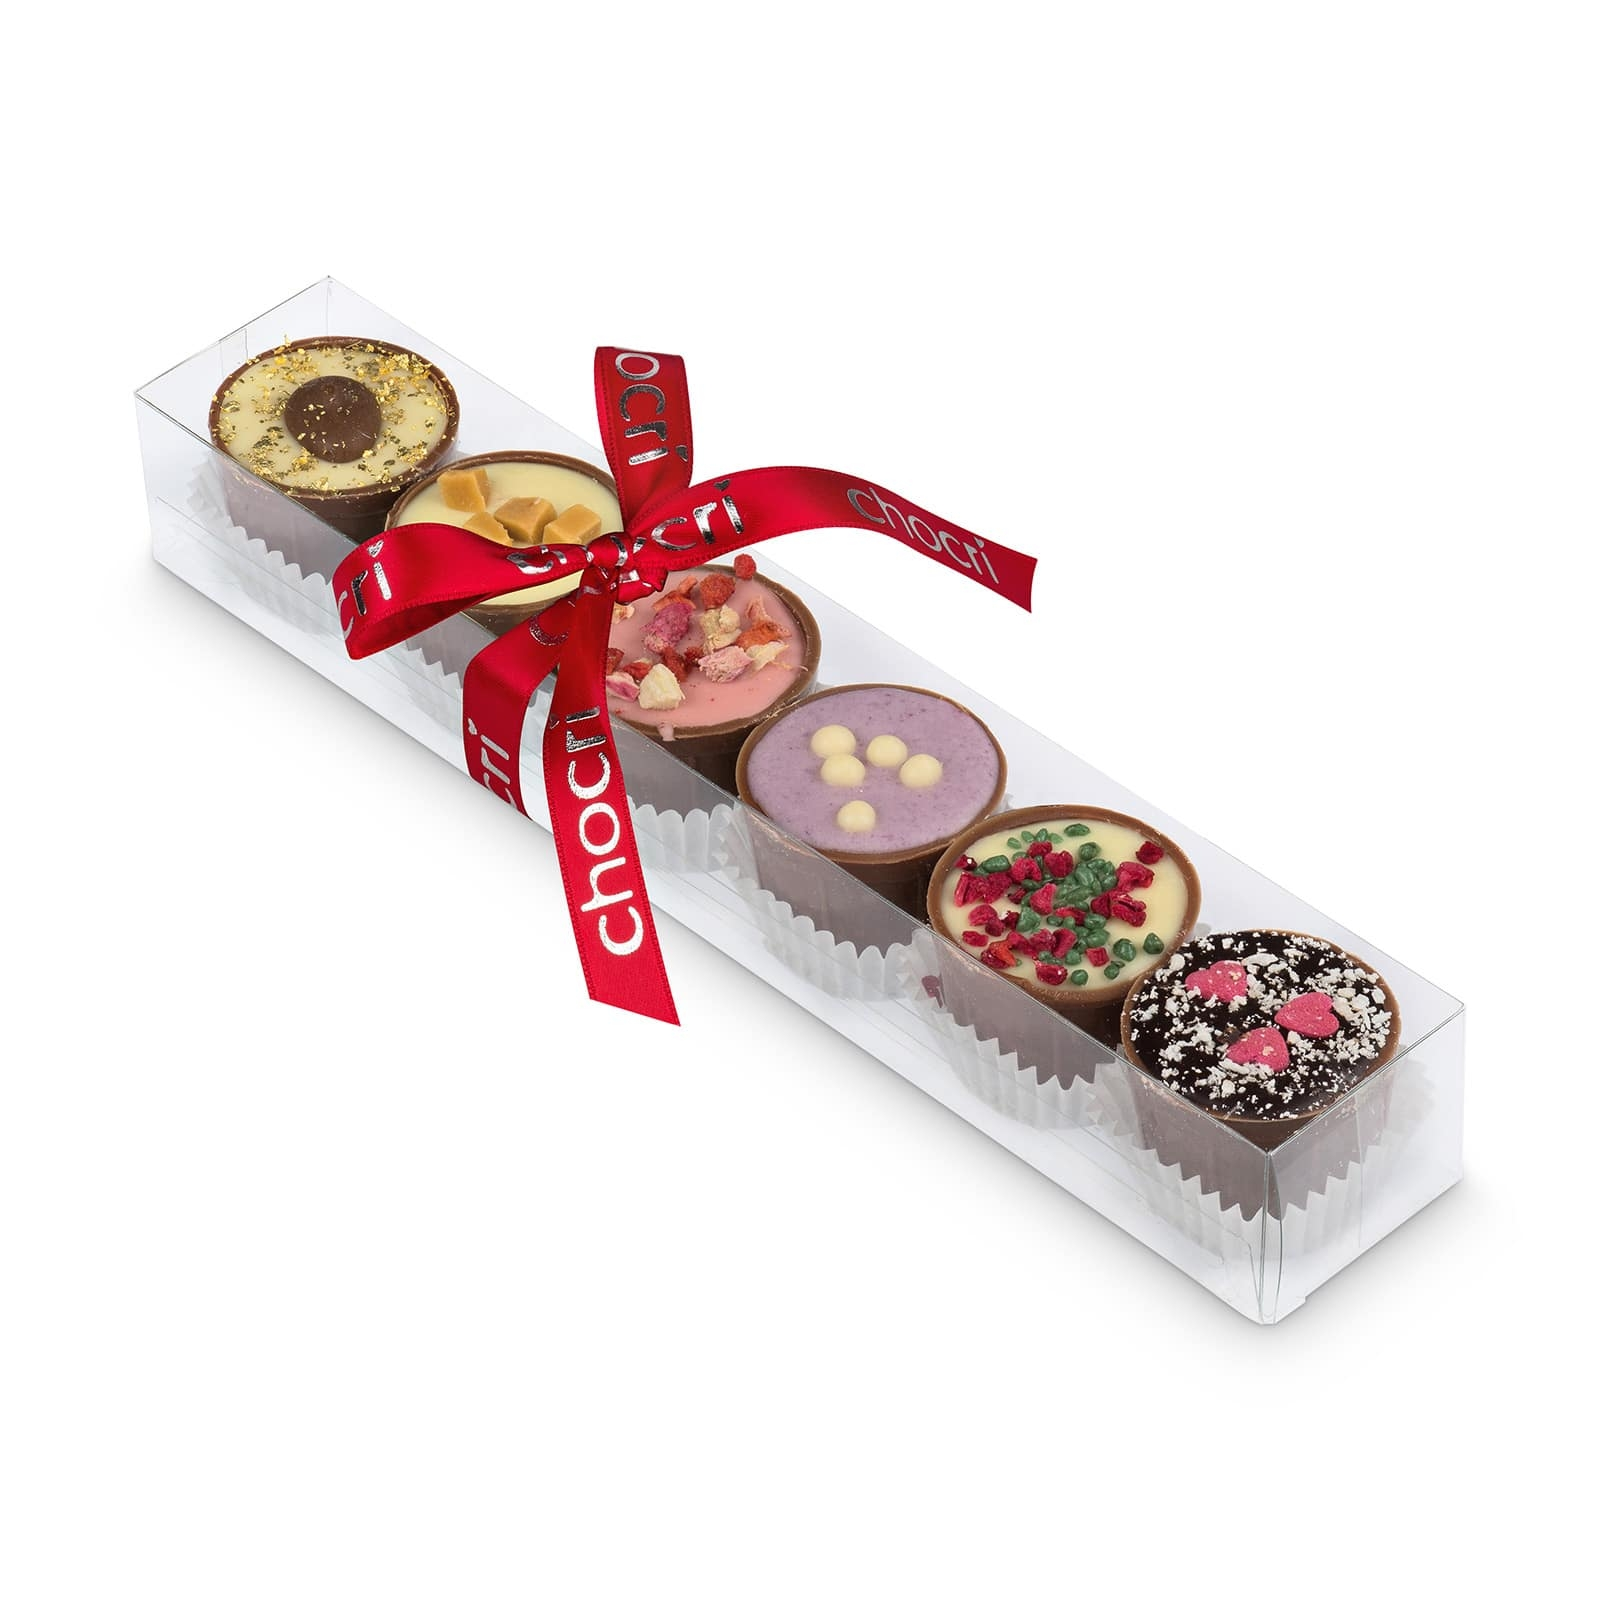 Köstlichsüsses - chocri 'Everyday's Darling' Cup Pralinenstange - Onlineshop Chocri